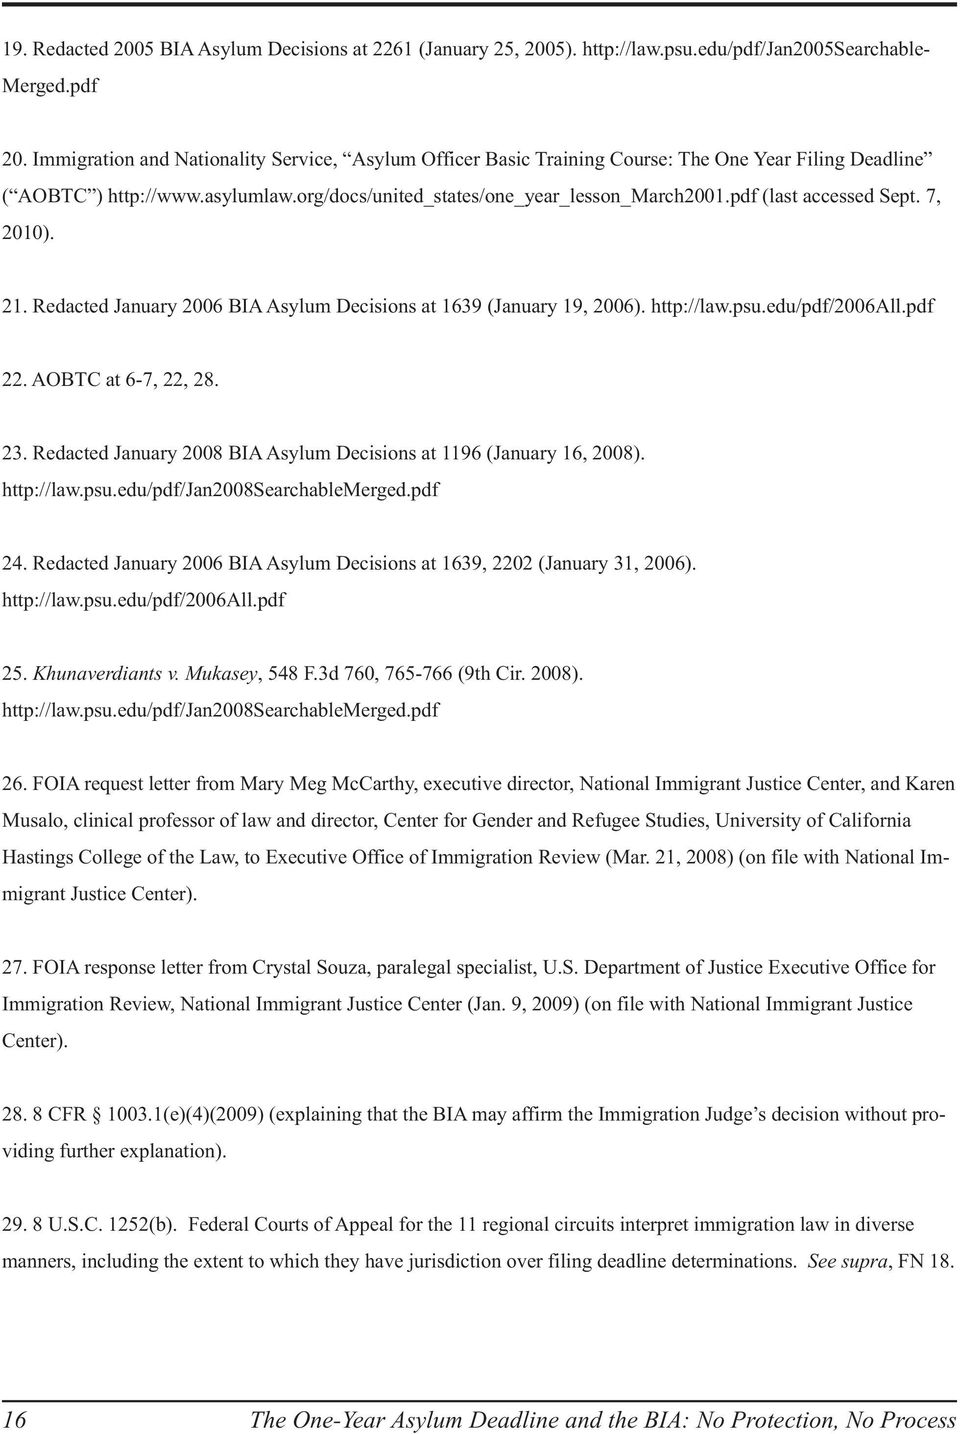 pdf (last accessed Sept. 7, 2010). 21. Redacted January 2006 BIA Asylum Decisions at 1639 (January 19, 2006). http://law.psu.edu/pdf/2006all.pdf 22. AOBTC at 6-7, 22, 28. 23.